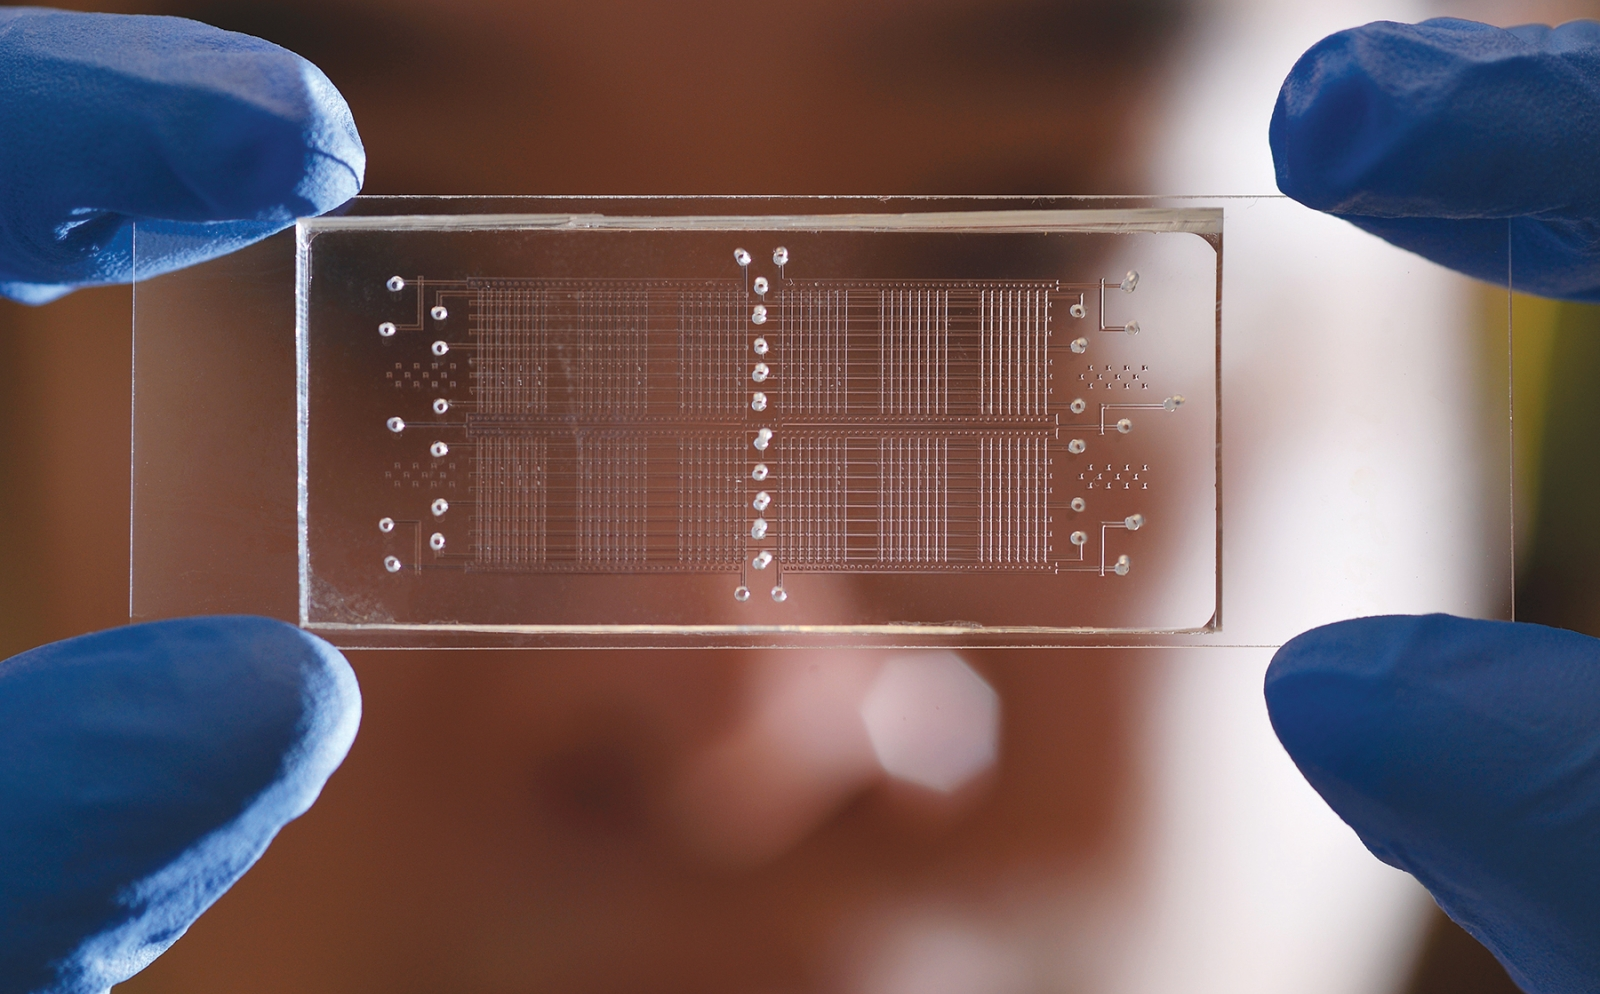 A microfluidic device that performs 96 biochemical reactions